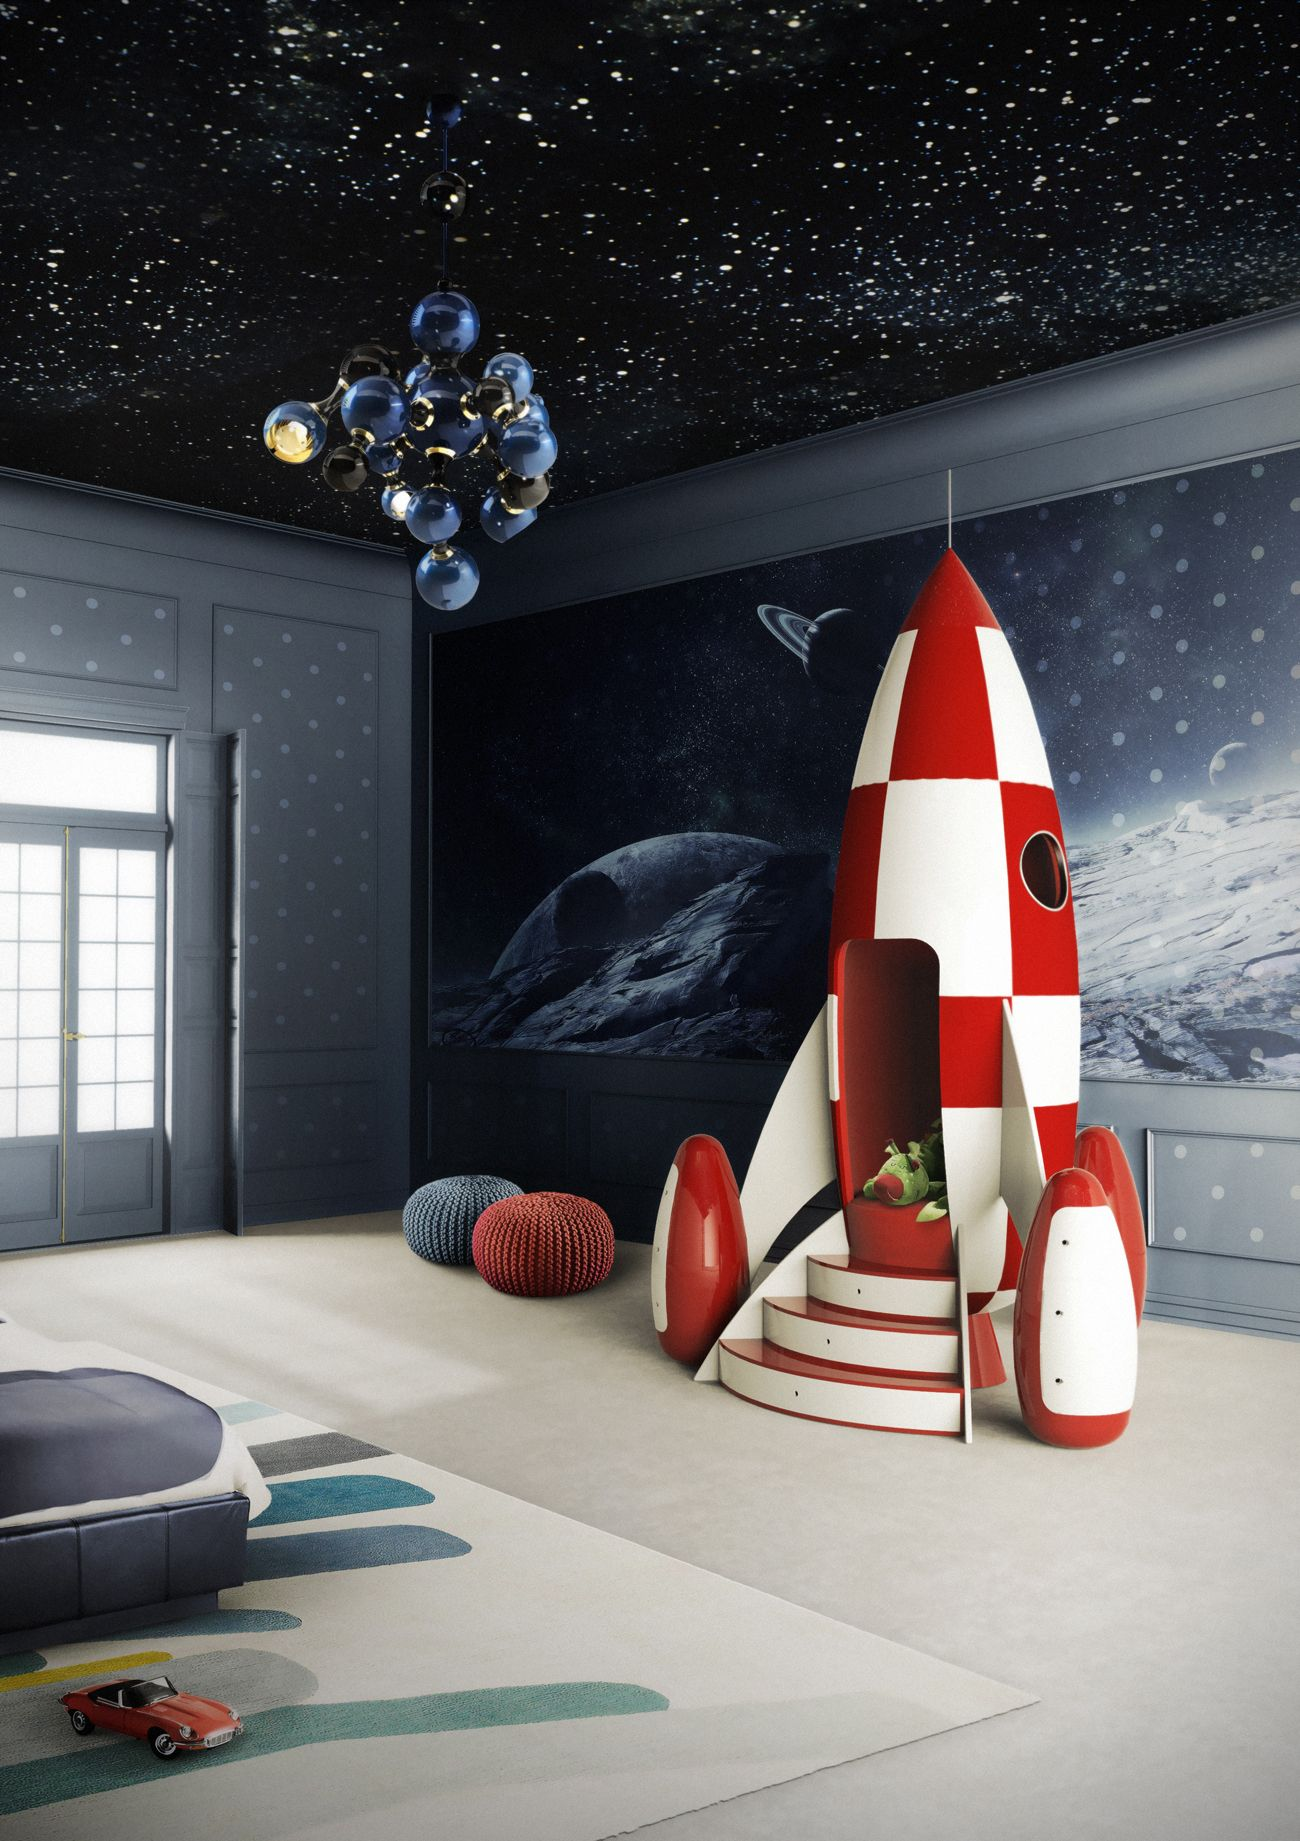 Outer Space Bedroom Decor 17 Best Images About Space Room On Pinterest Solar System Toys